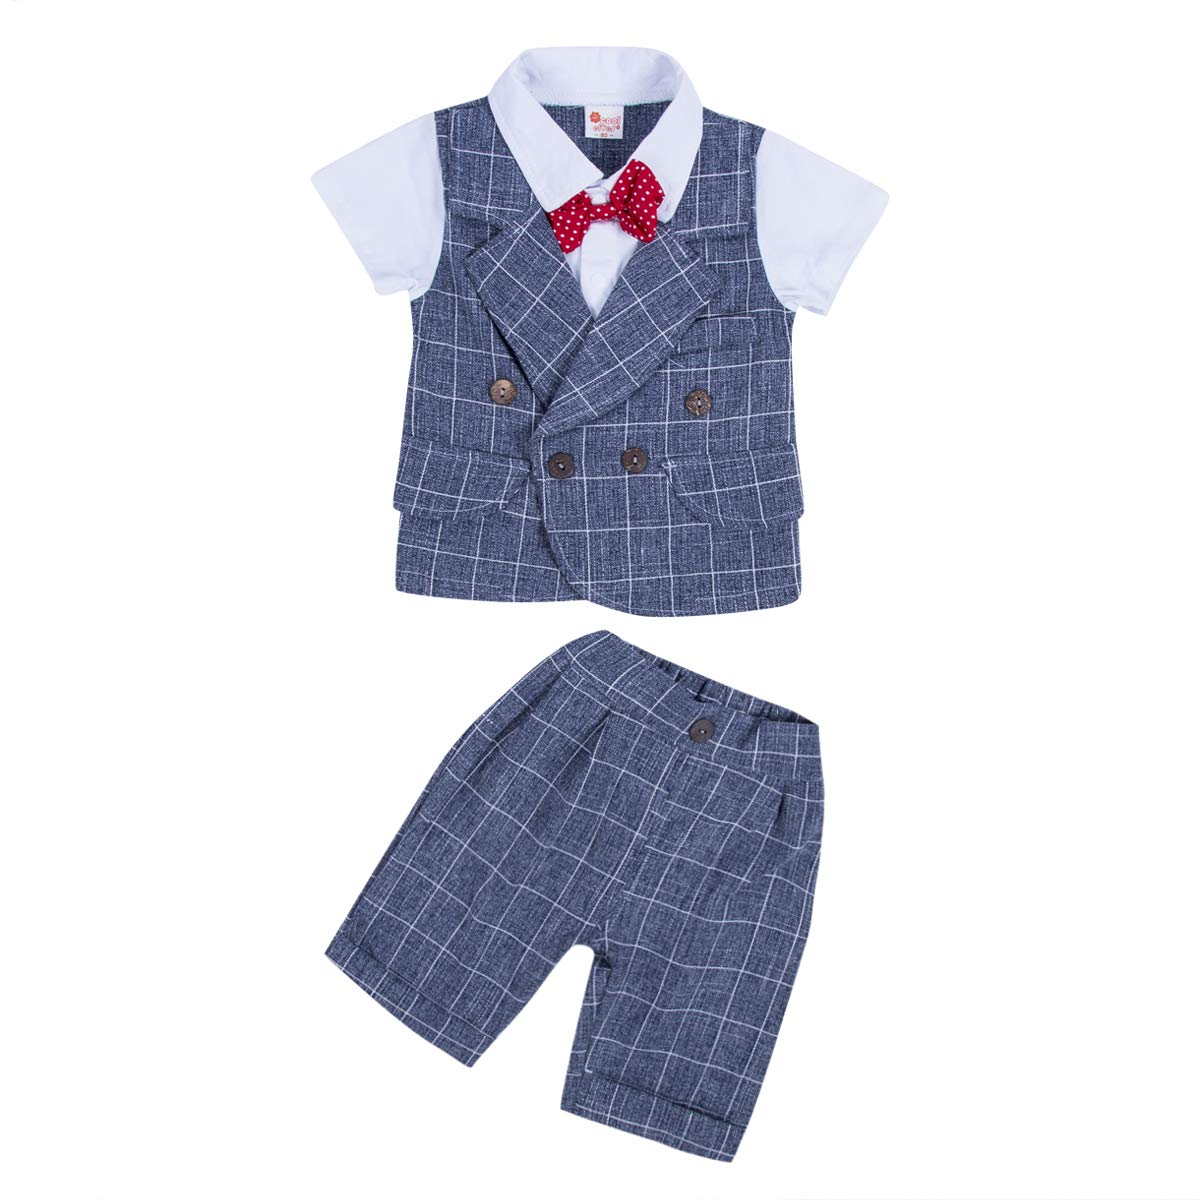 Wide.ling Infant Toddler Baby Tuxedos Clothes Gentleman Romper Jumpsuits Kids Boys Formal Suits Bodysuits Tuxedo Outfits Clothes+Berets Hat